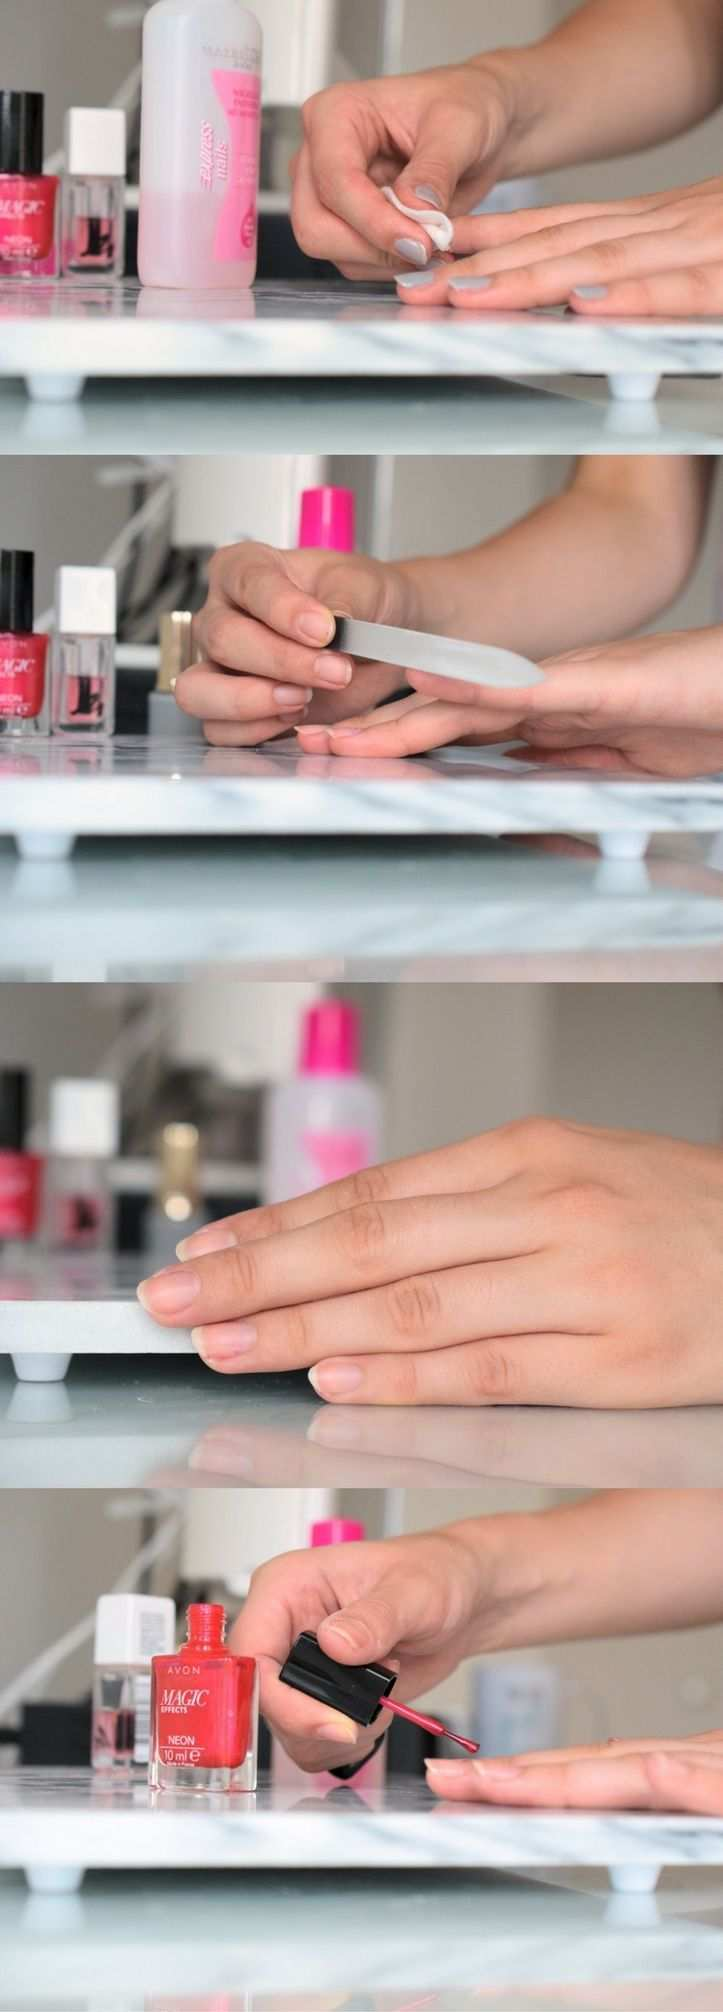 So You Do A Manicure At Home Diy In 5 Steps To Beautiful Nage Nail Tutorials Manikure Zu Hause Nagellackentferner Nagellack